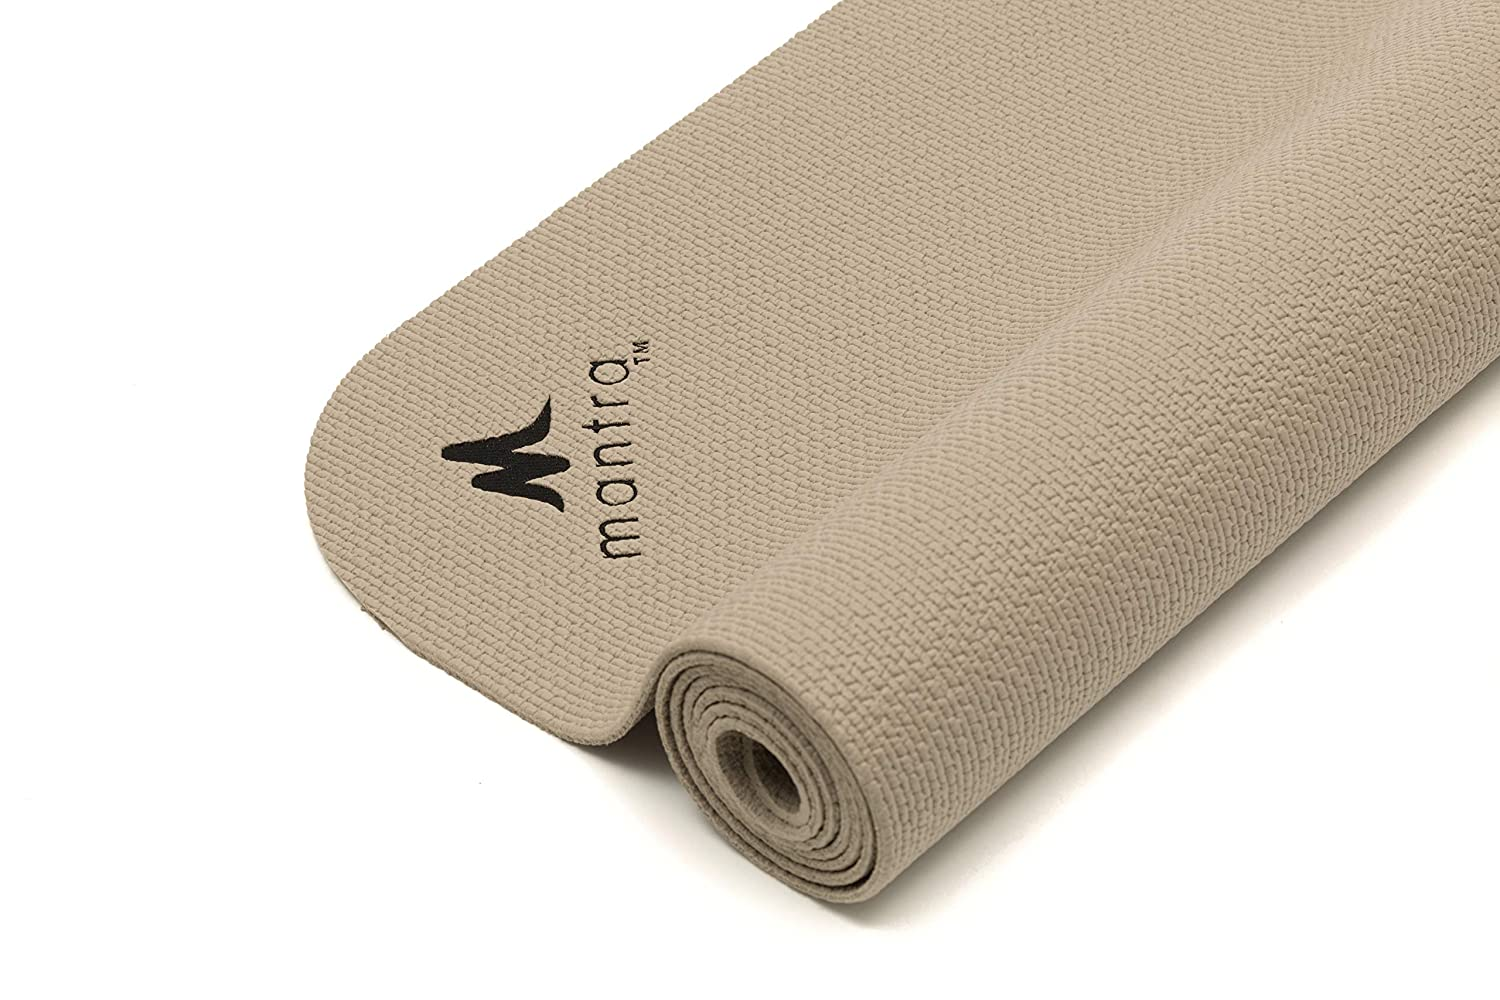 Endurance Yoga Mat 28 x 76 Wider, Longer Exercise Pad for Pilates, Stretching, Workouts, Fitness Textured, Comfort Lightweight, Portable, Hypoallergenic